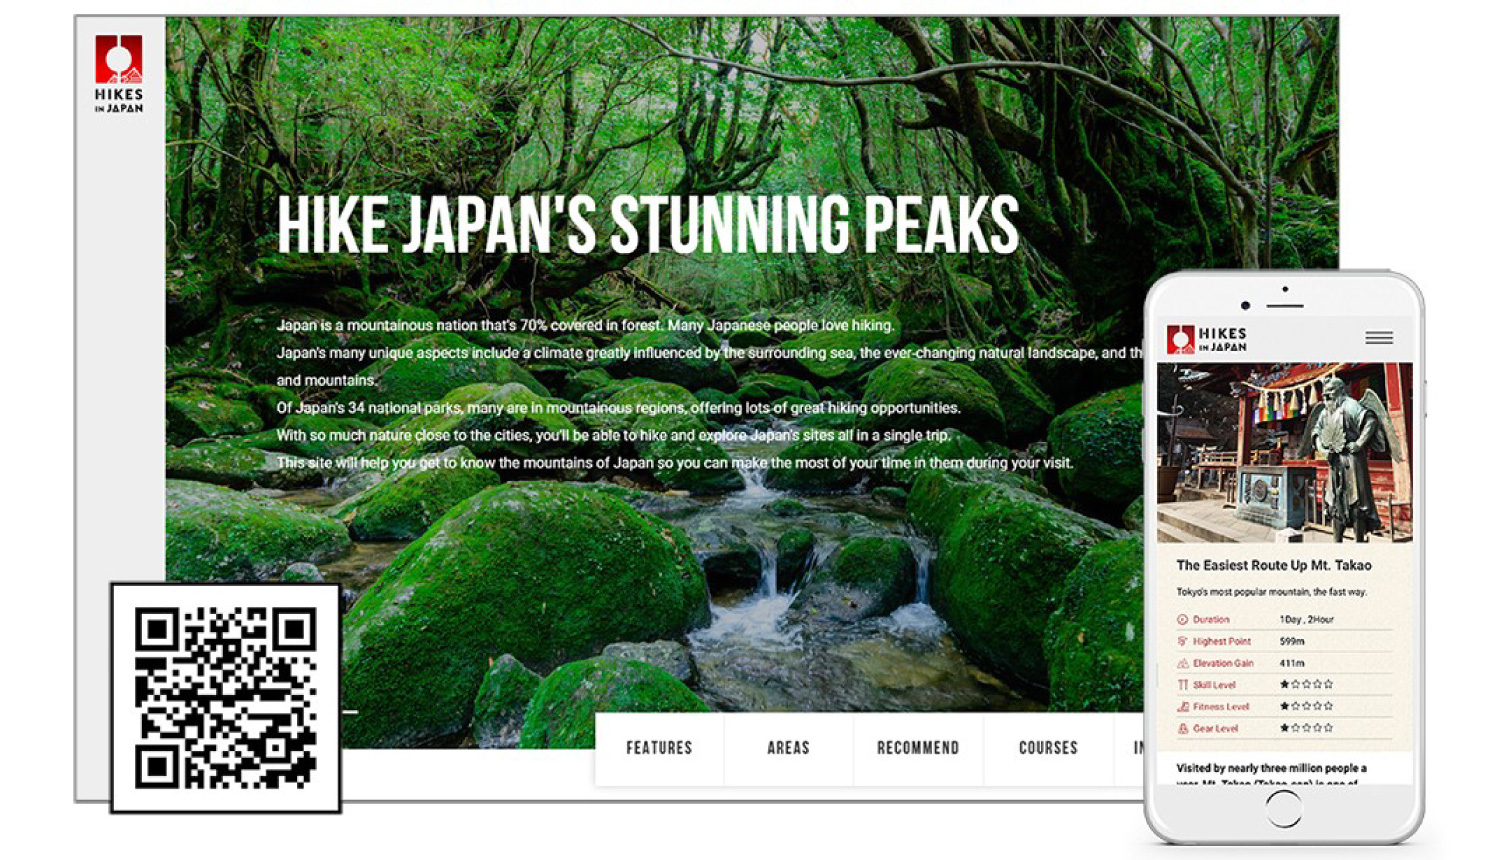 HIKES-IN-JAPAN-登山情報ページ